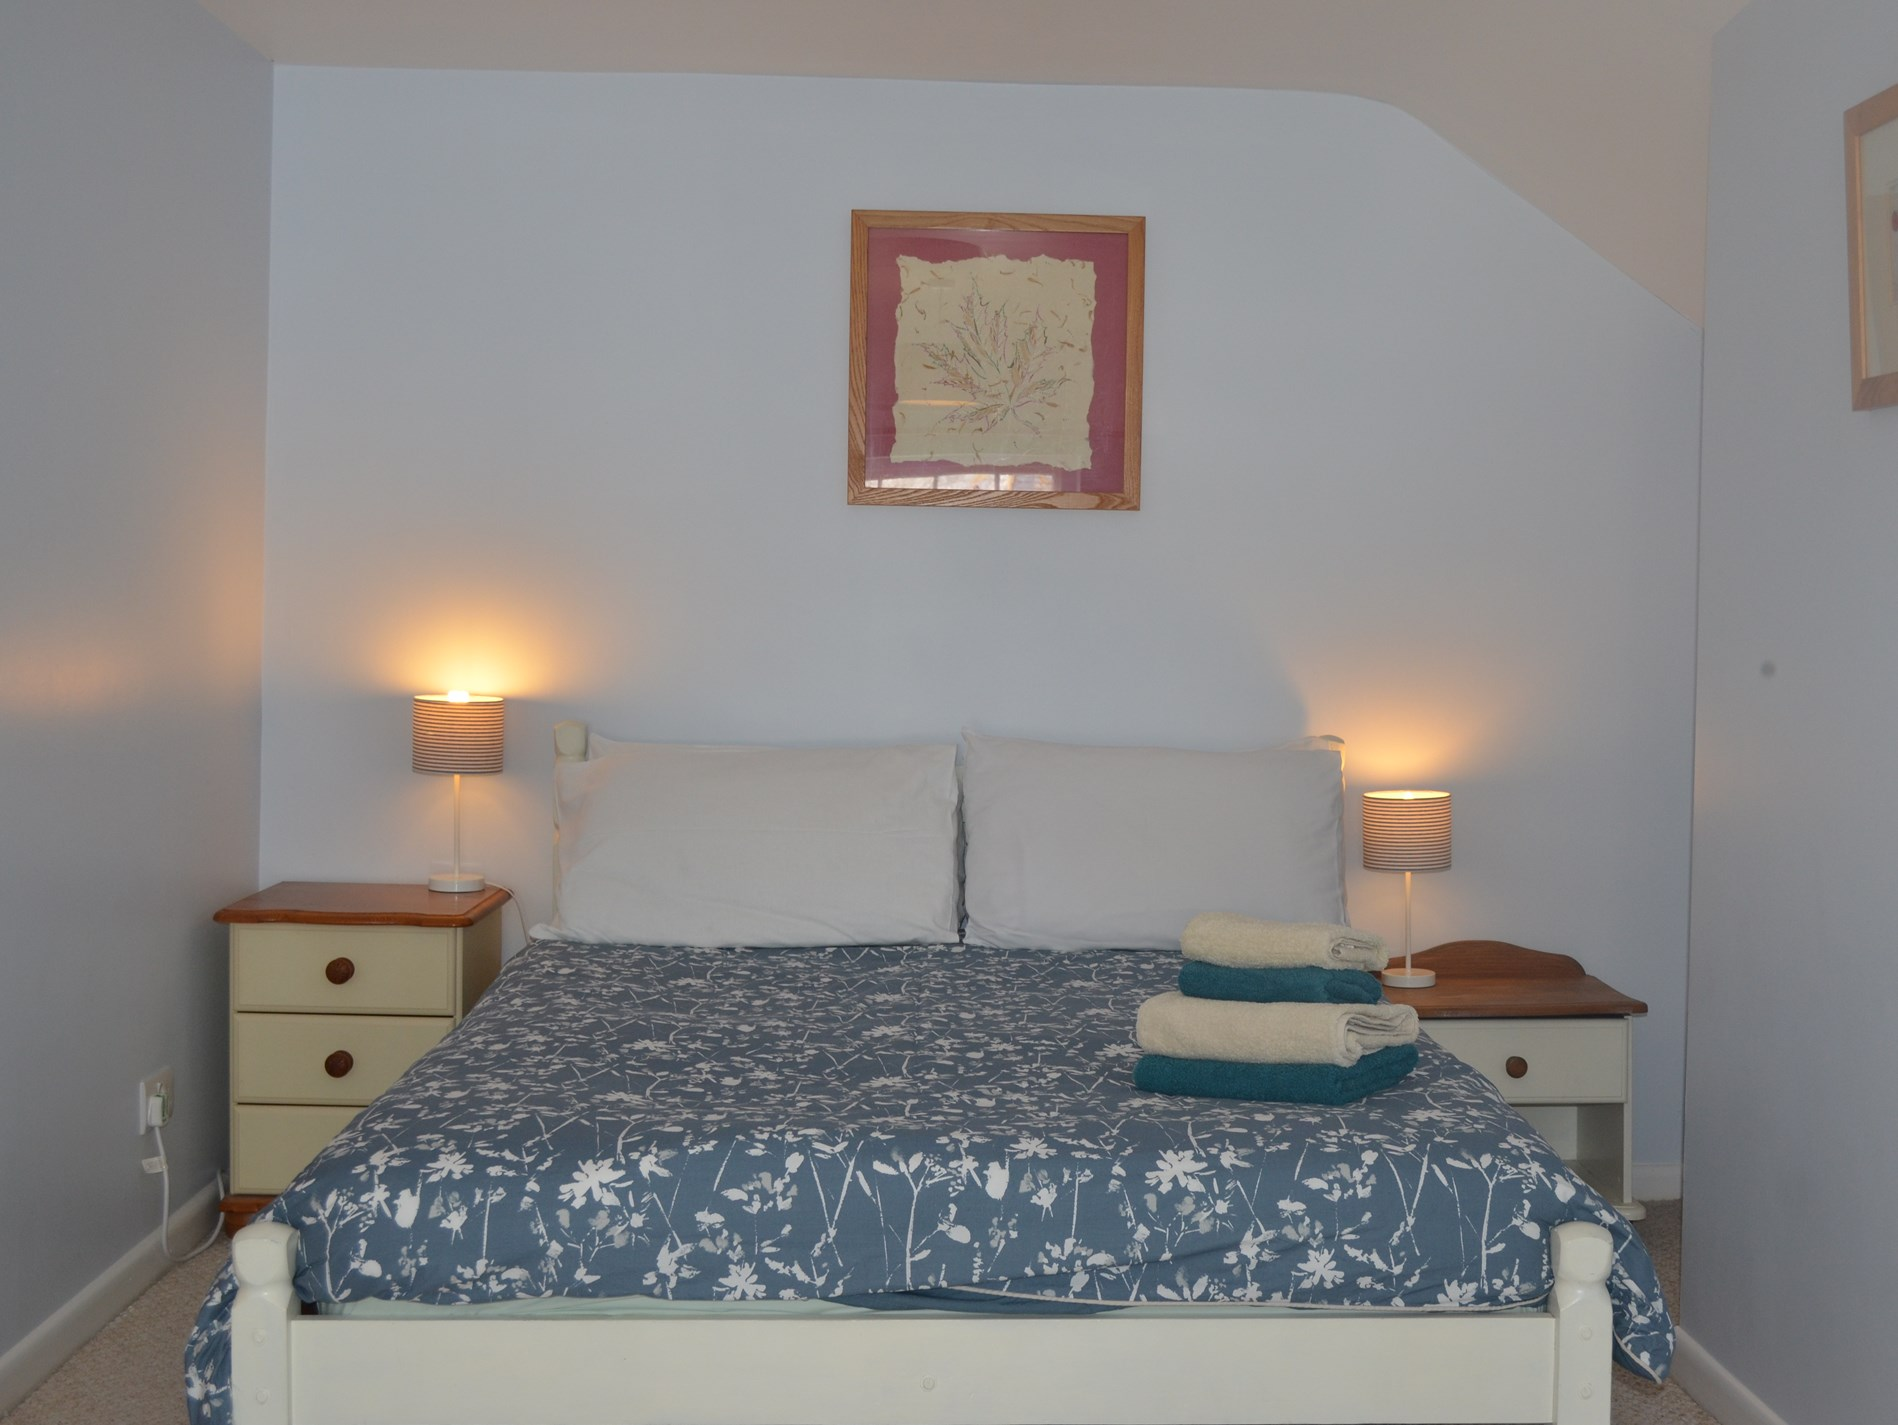 3 Bedroom Apartment in South Cornwall, Cornwall